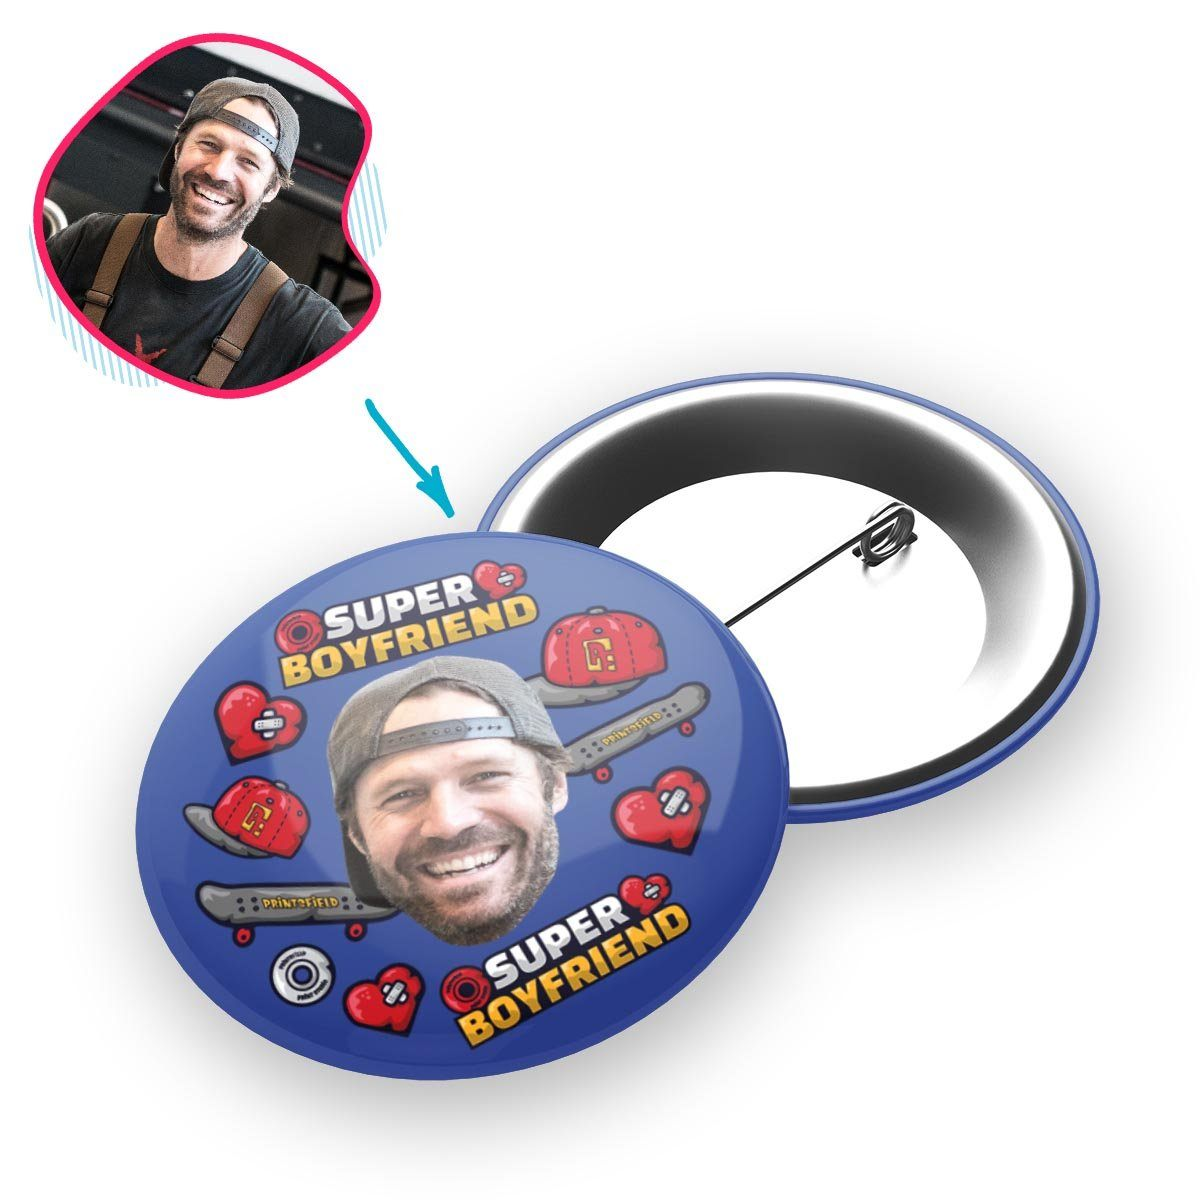 Darkblue Boyfriend personalized pin with photo of face printed on it